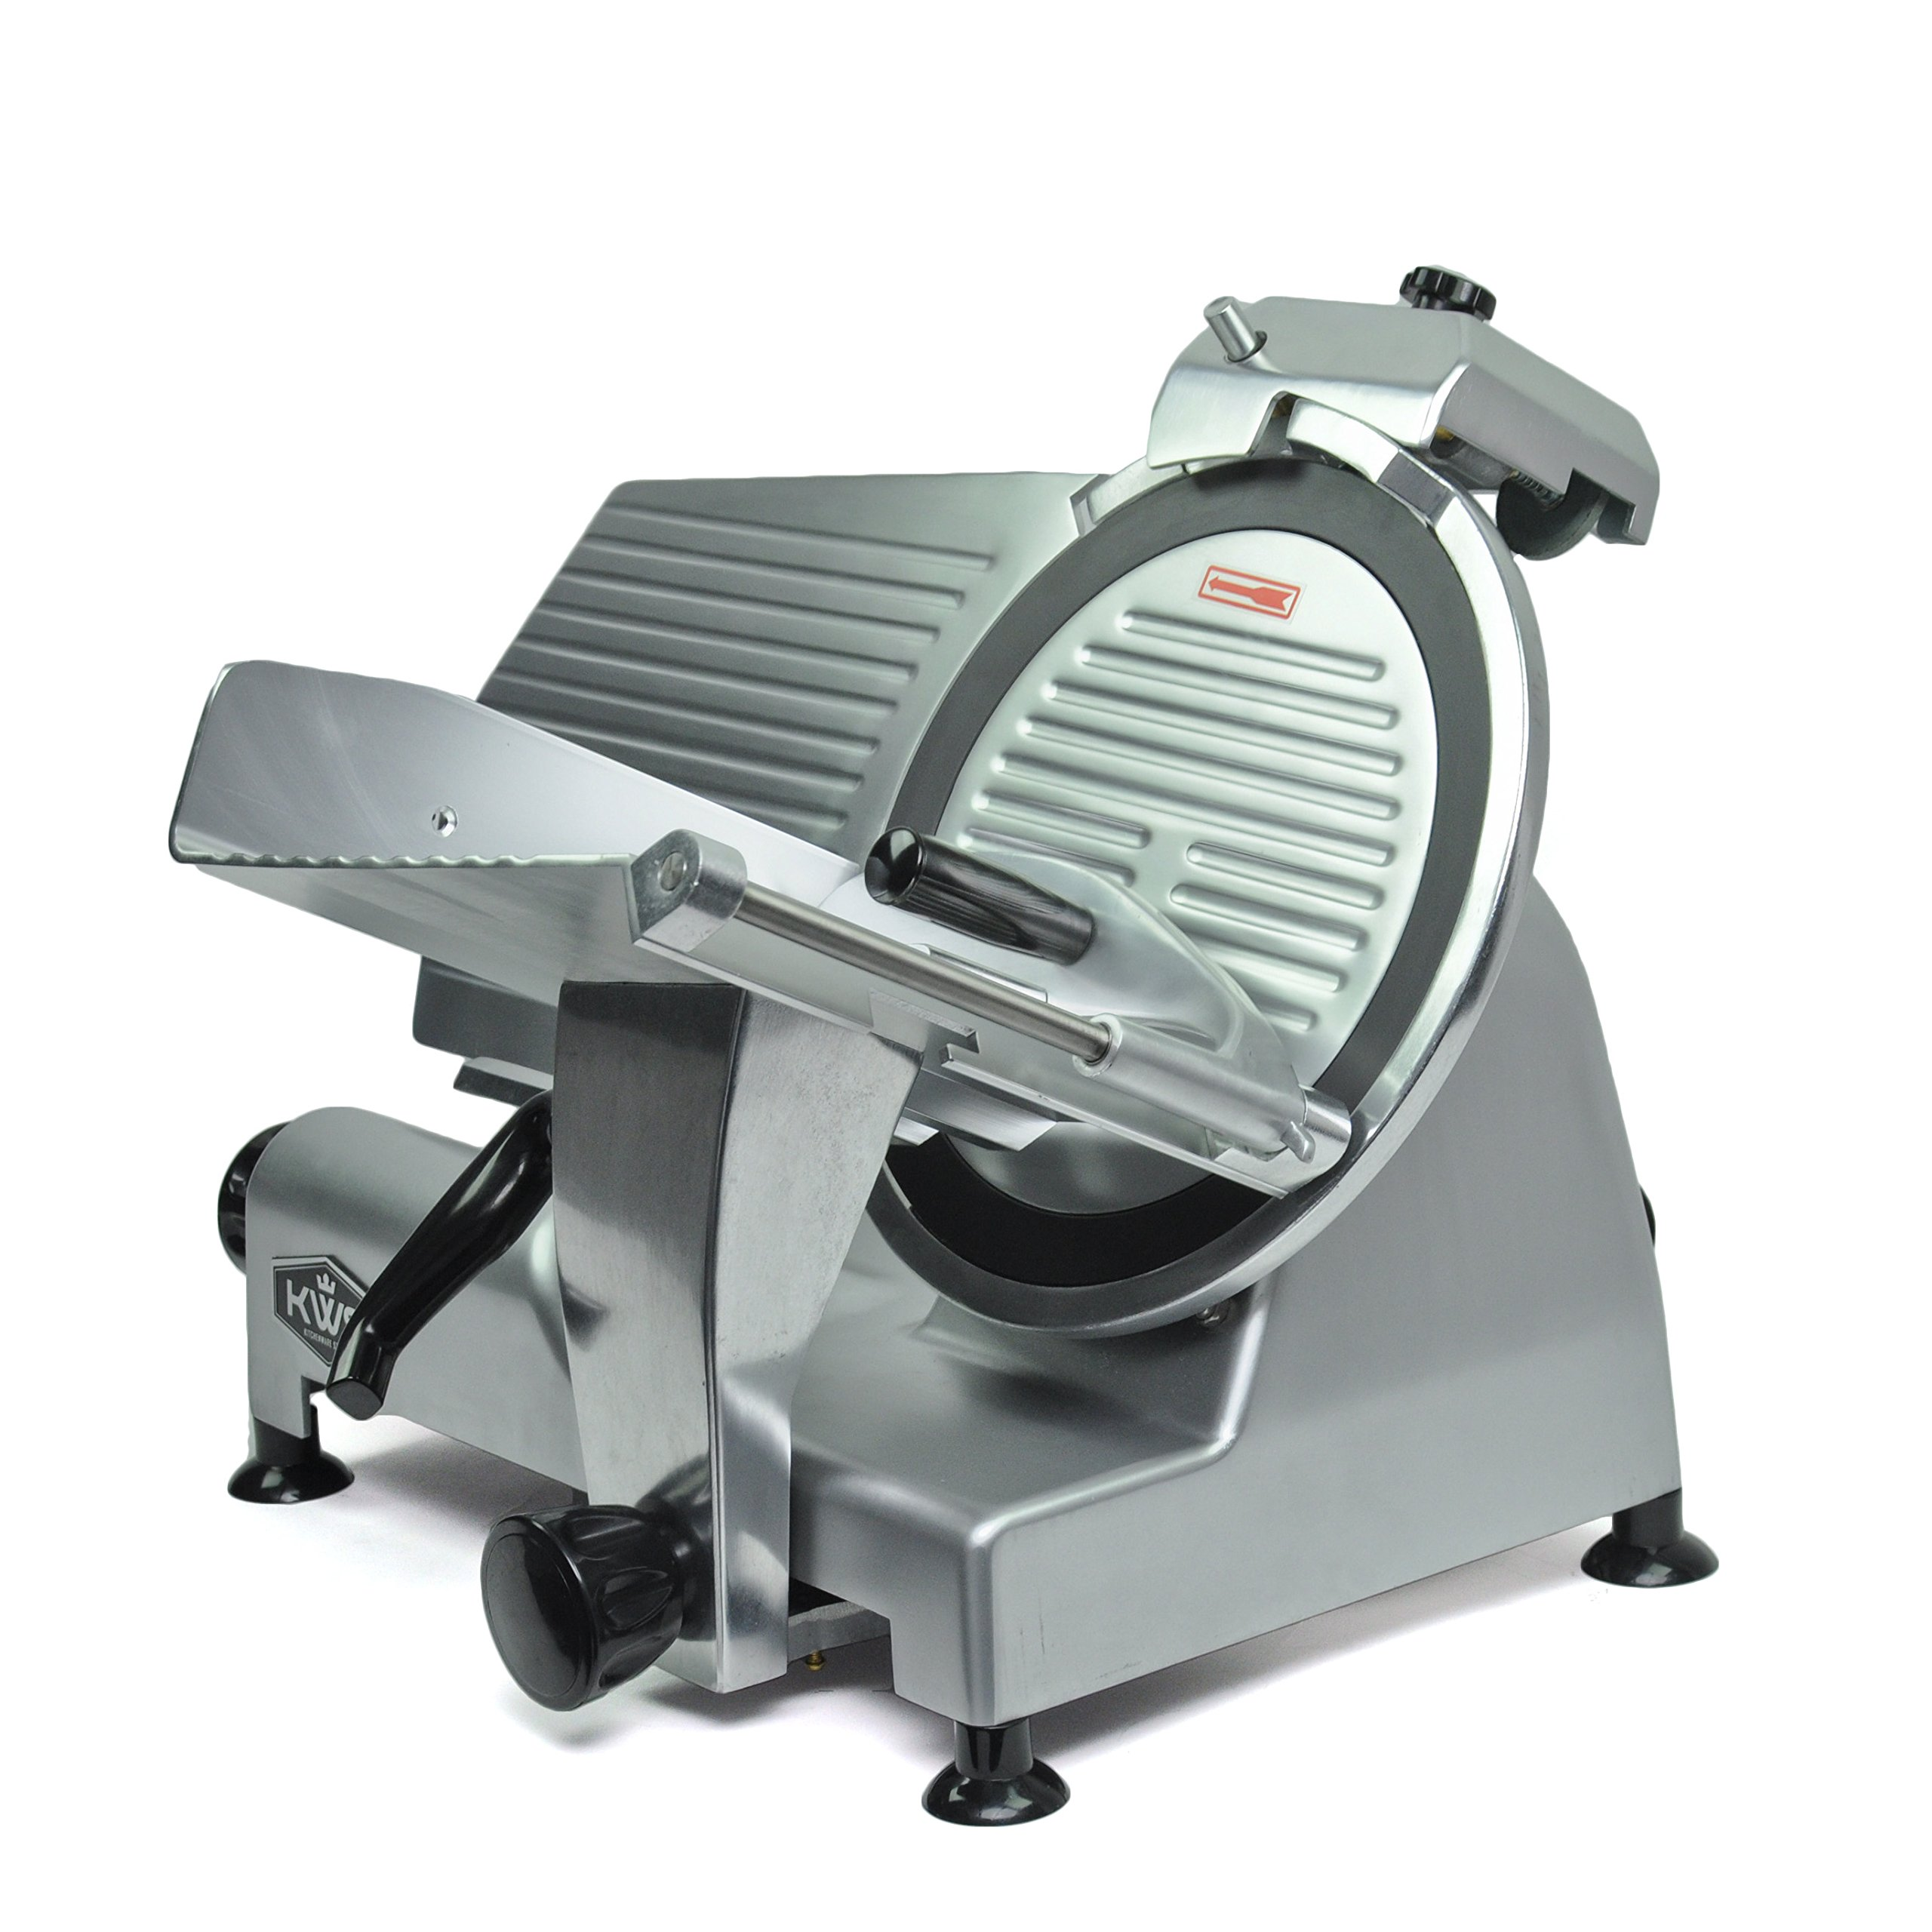 KWS MS-12NT Premium Commercial 420w Electric Meat Slicer 12-Inch Non-sticky Teflon Blade, Frozen Meat/Cheese/Food Slicer Low Noises Commercial and Home Use by KitchenWare Station